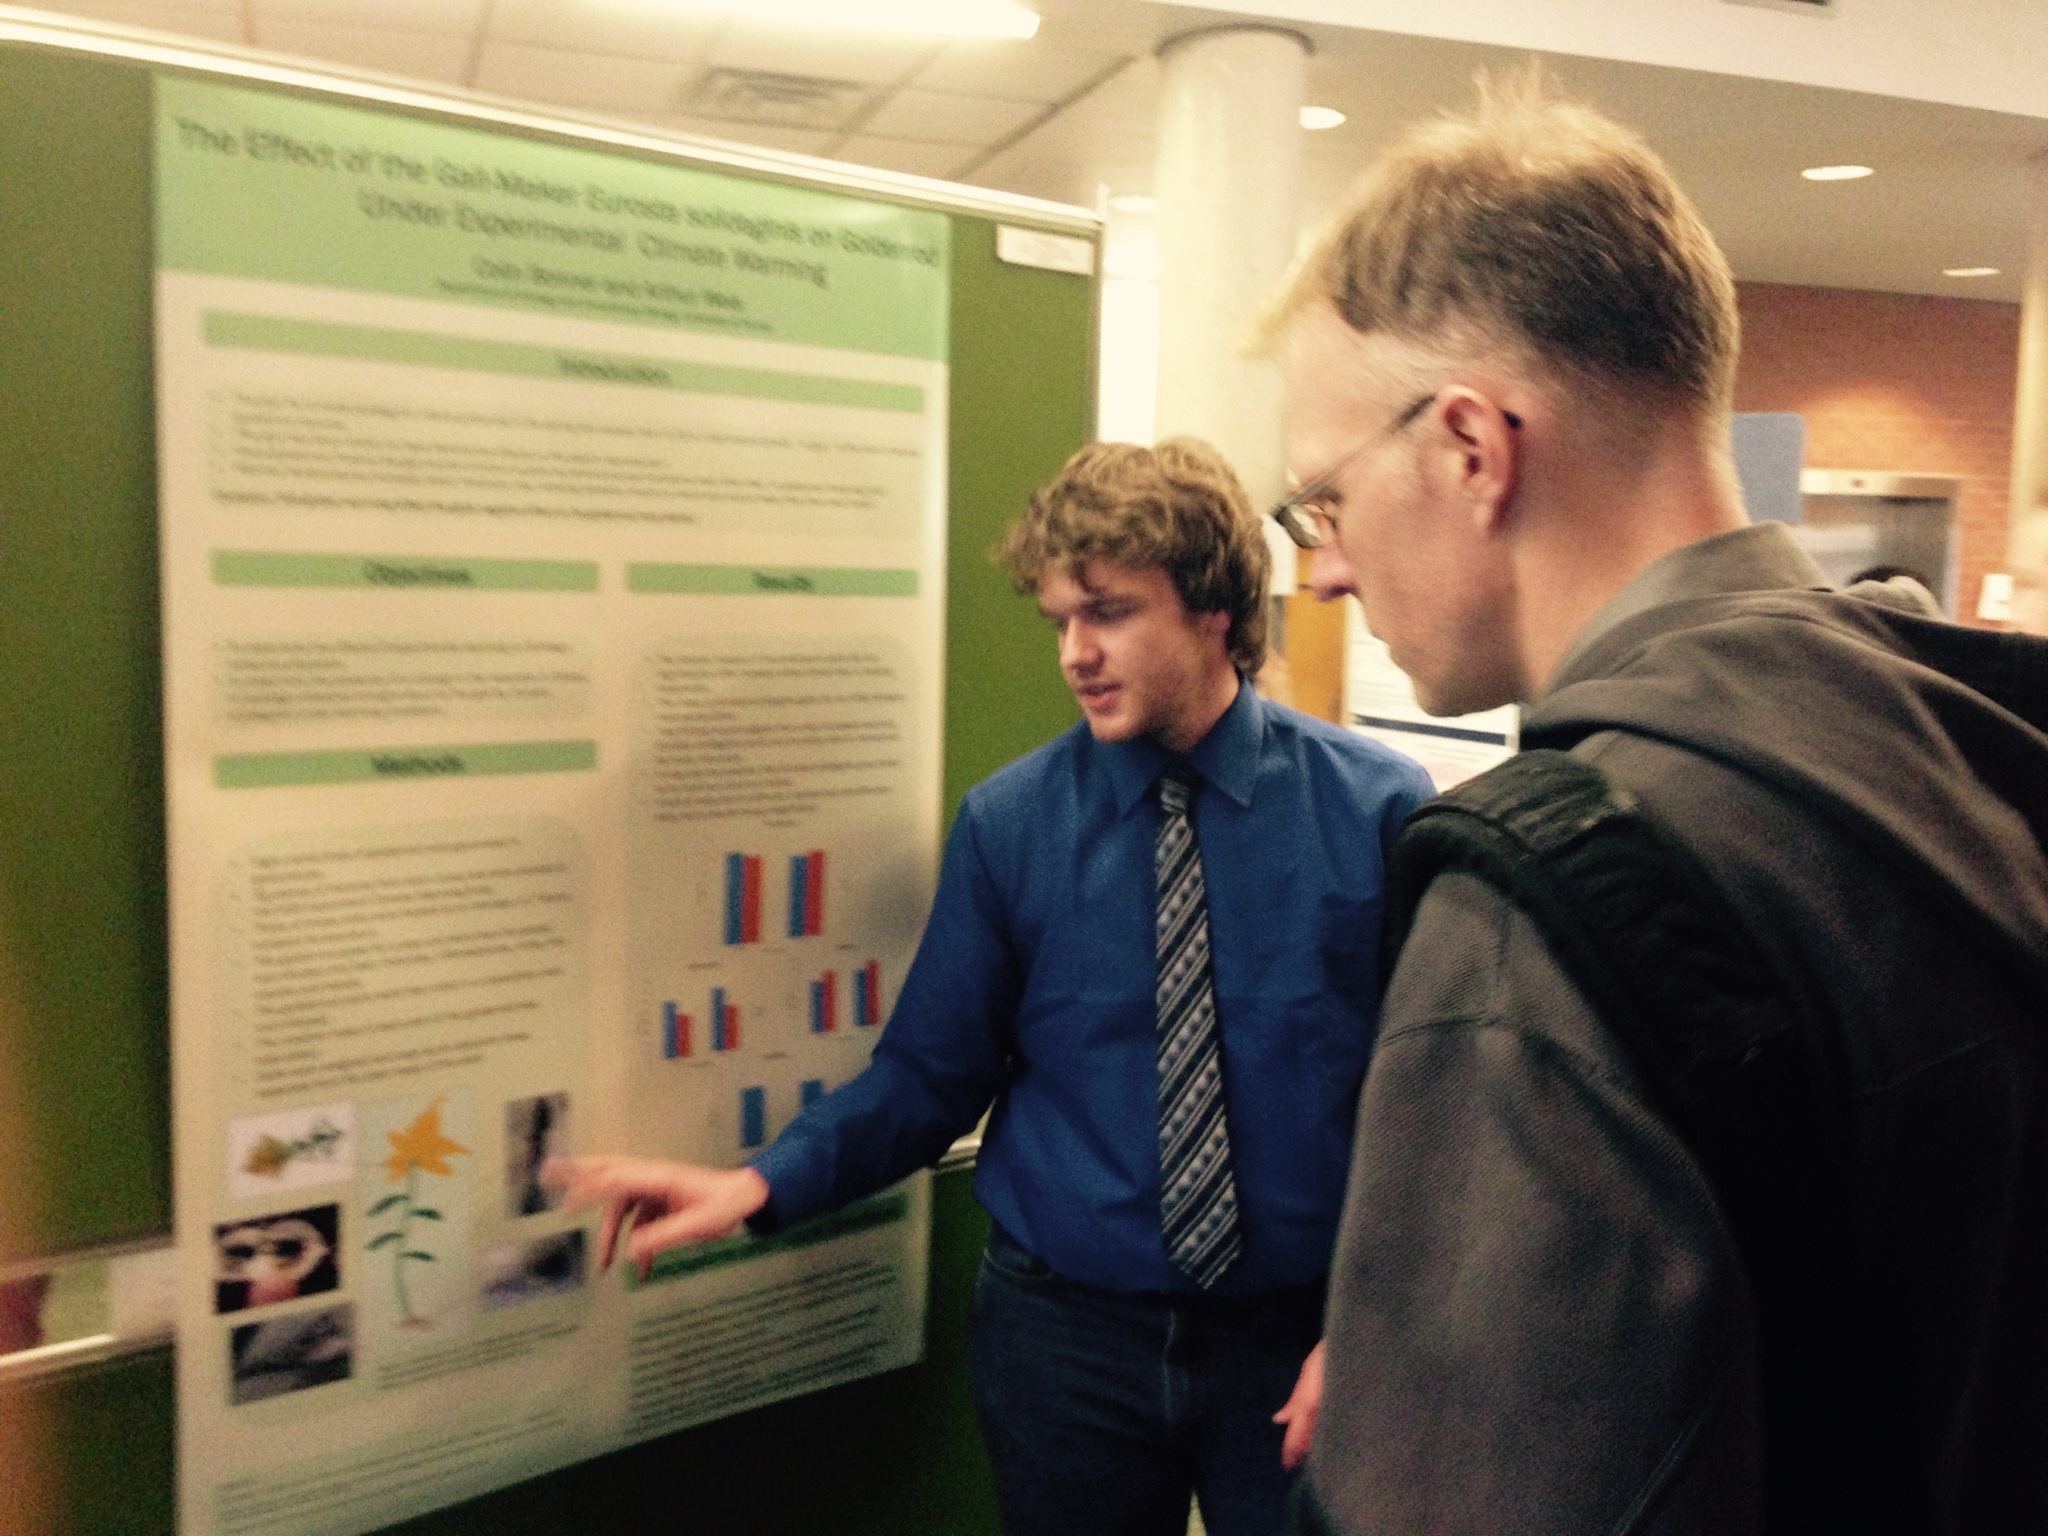 Colin Bonner explain his 2014 undergraduate research poster to Ben Gilbert.